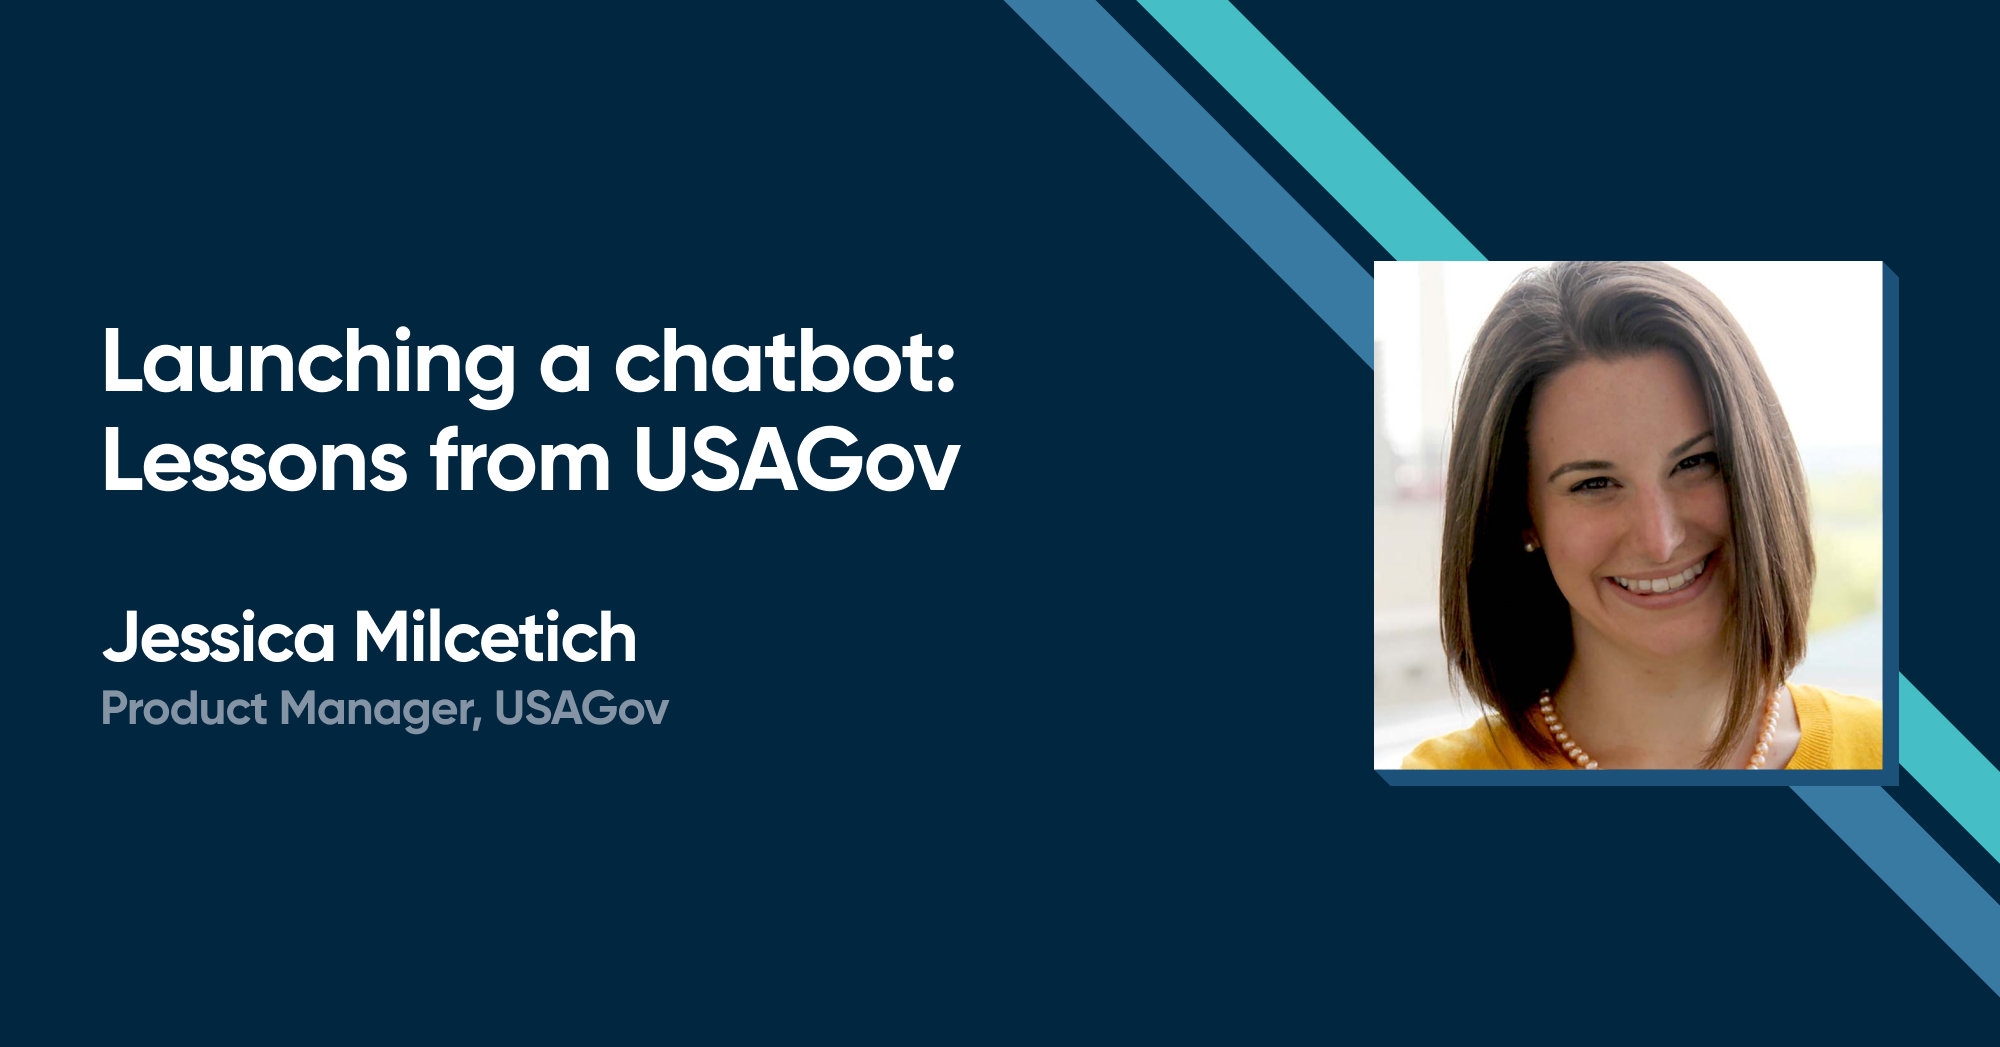 Jessica Milcetich - Launching a chatbot: Lessons from USAGov